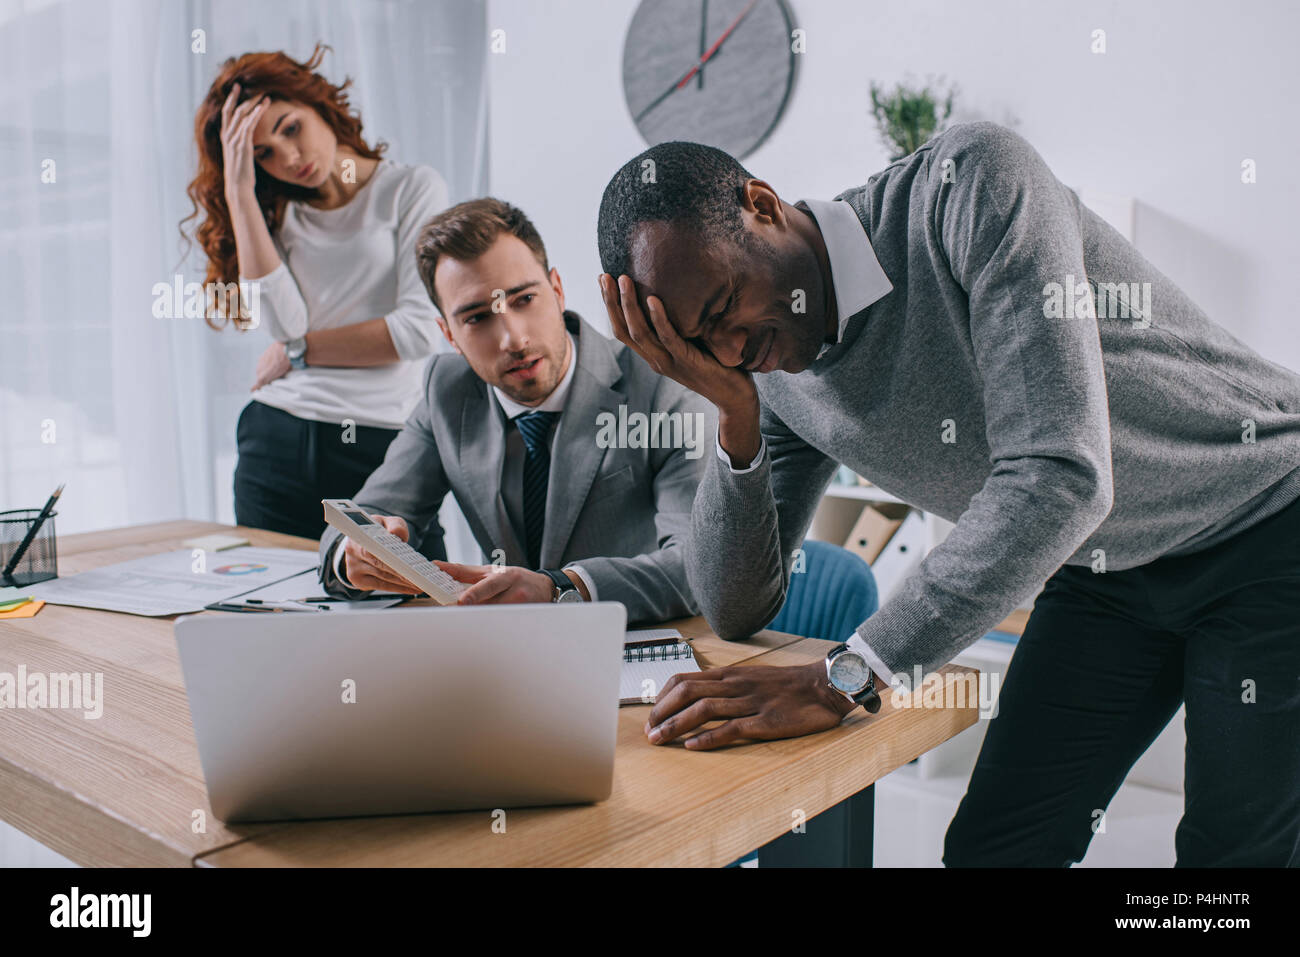 Financial adviser showing calculation to upset business partners - Stock Image